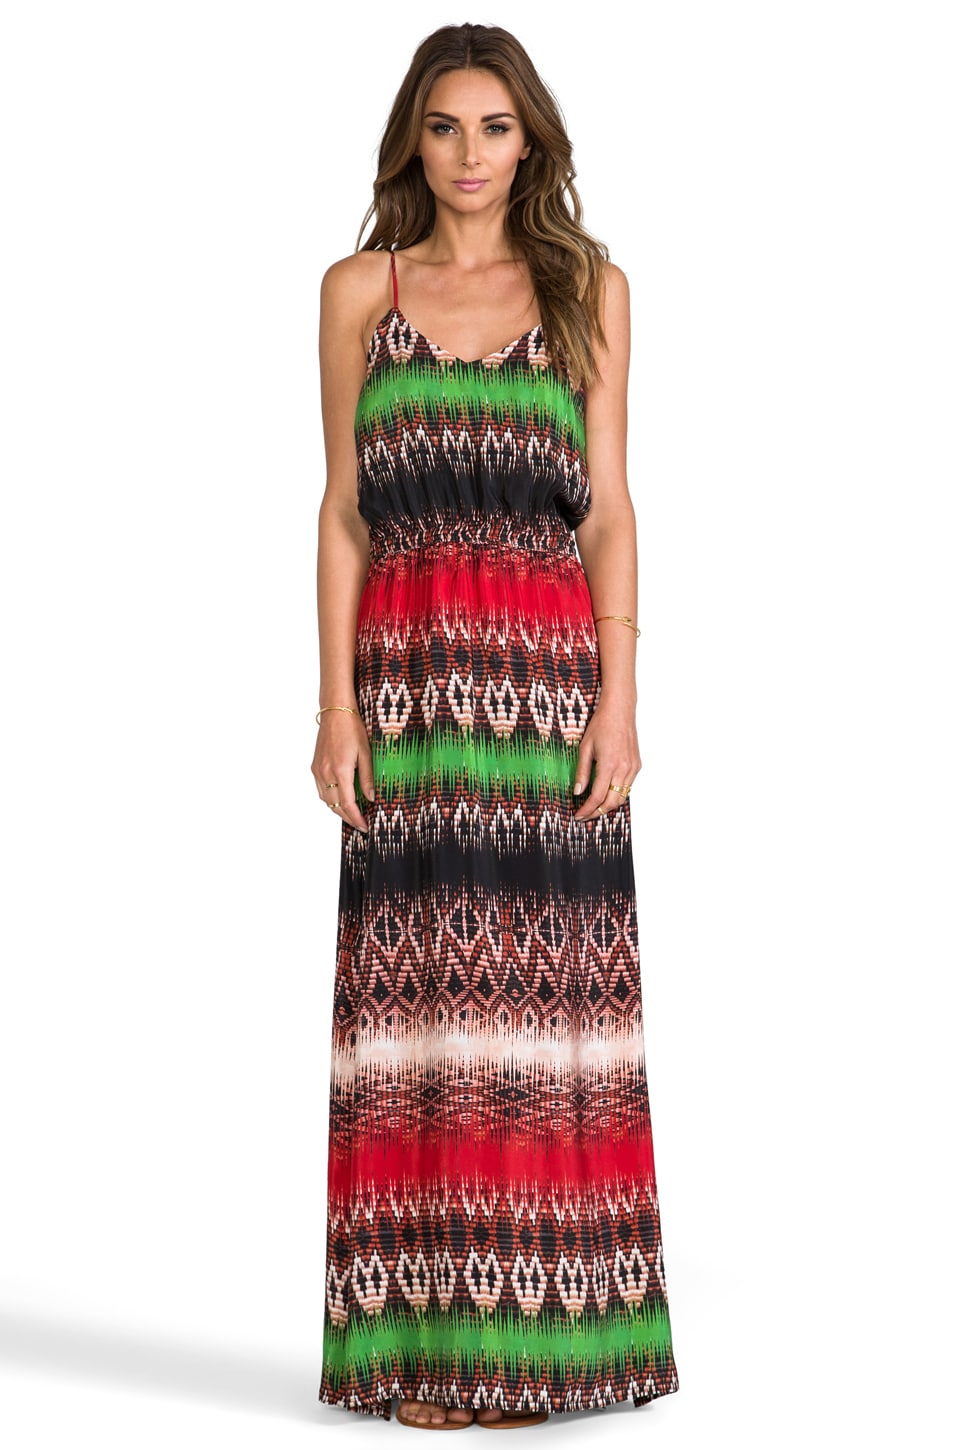 Vix Swimwear Mabel Long Dress in Paje